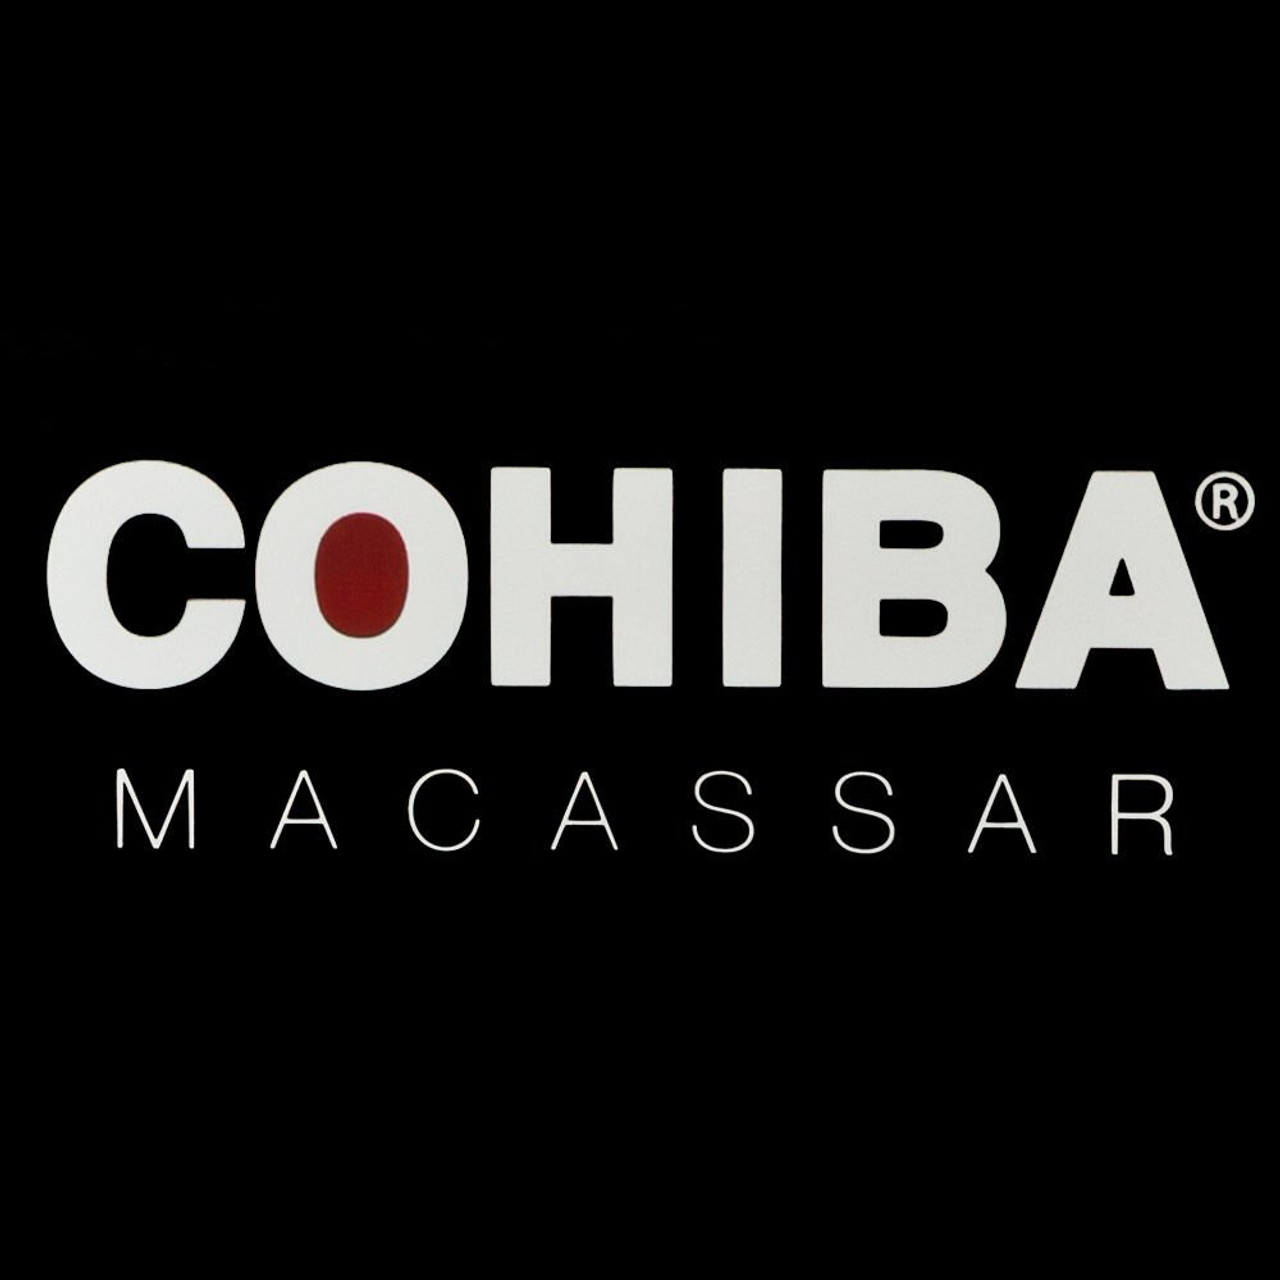 Cohiba Macassar Toro Grande Cigars - 6.0 x 52 (Box of 10)